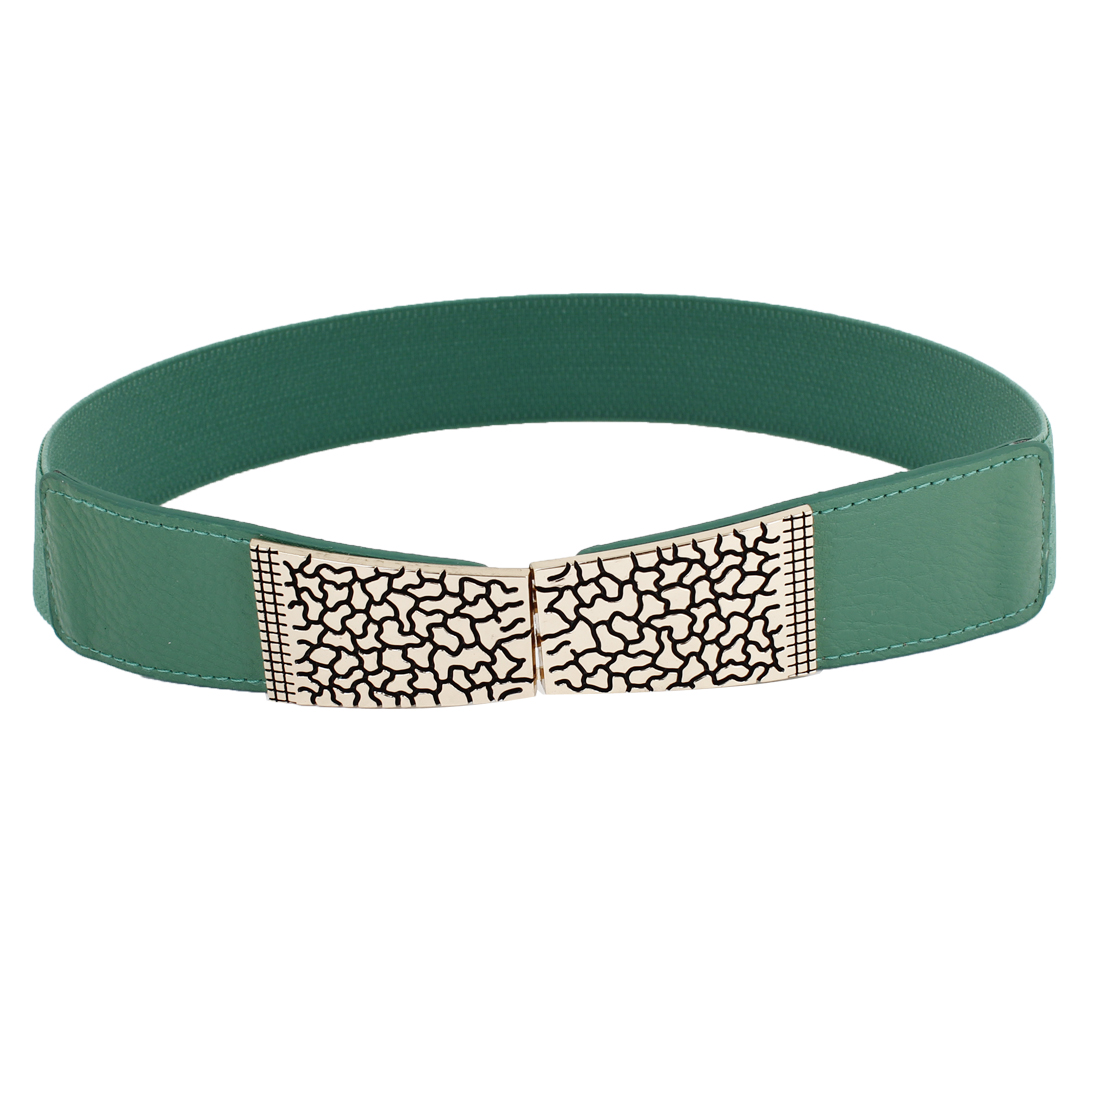 Metal Crack Design Interlocking Buckle Stretchy Cinch Belt Green for Ladies